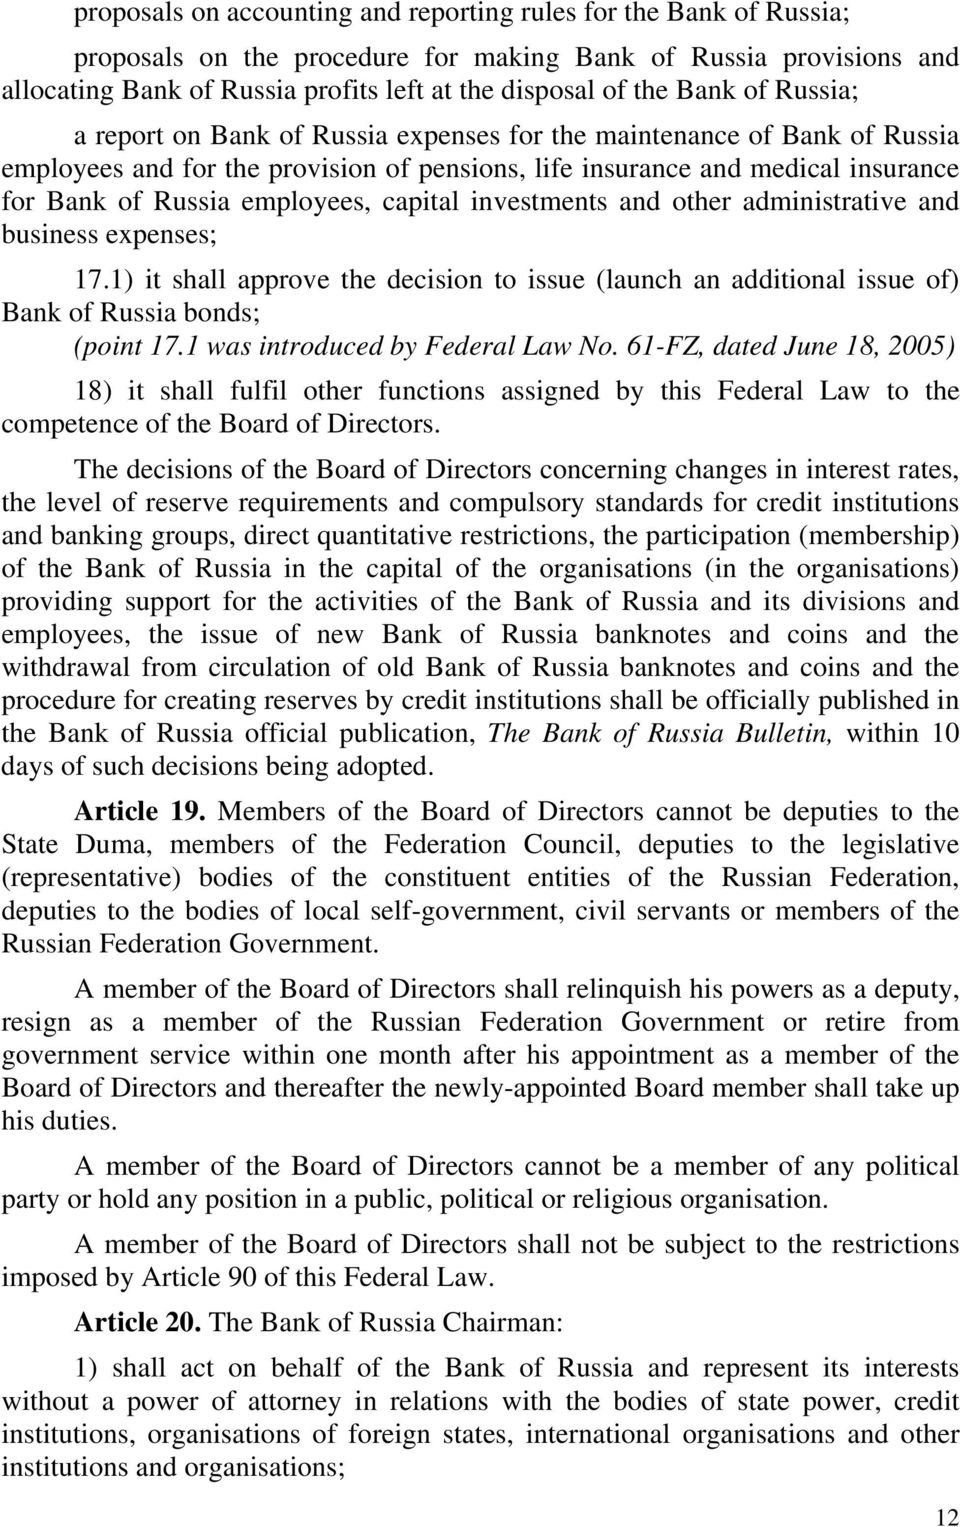 employees, capital investments and other administrative and business expenses; 17.1) it shall approve the decision to issue (launch an additional issue of) Bank of Russia bonds; (point 17.